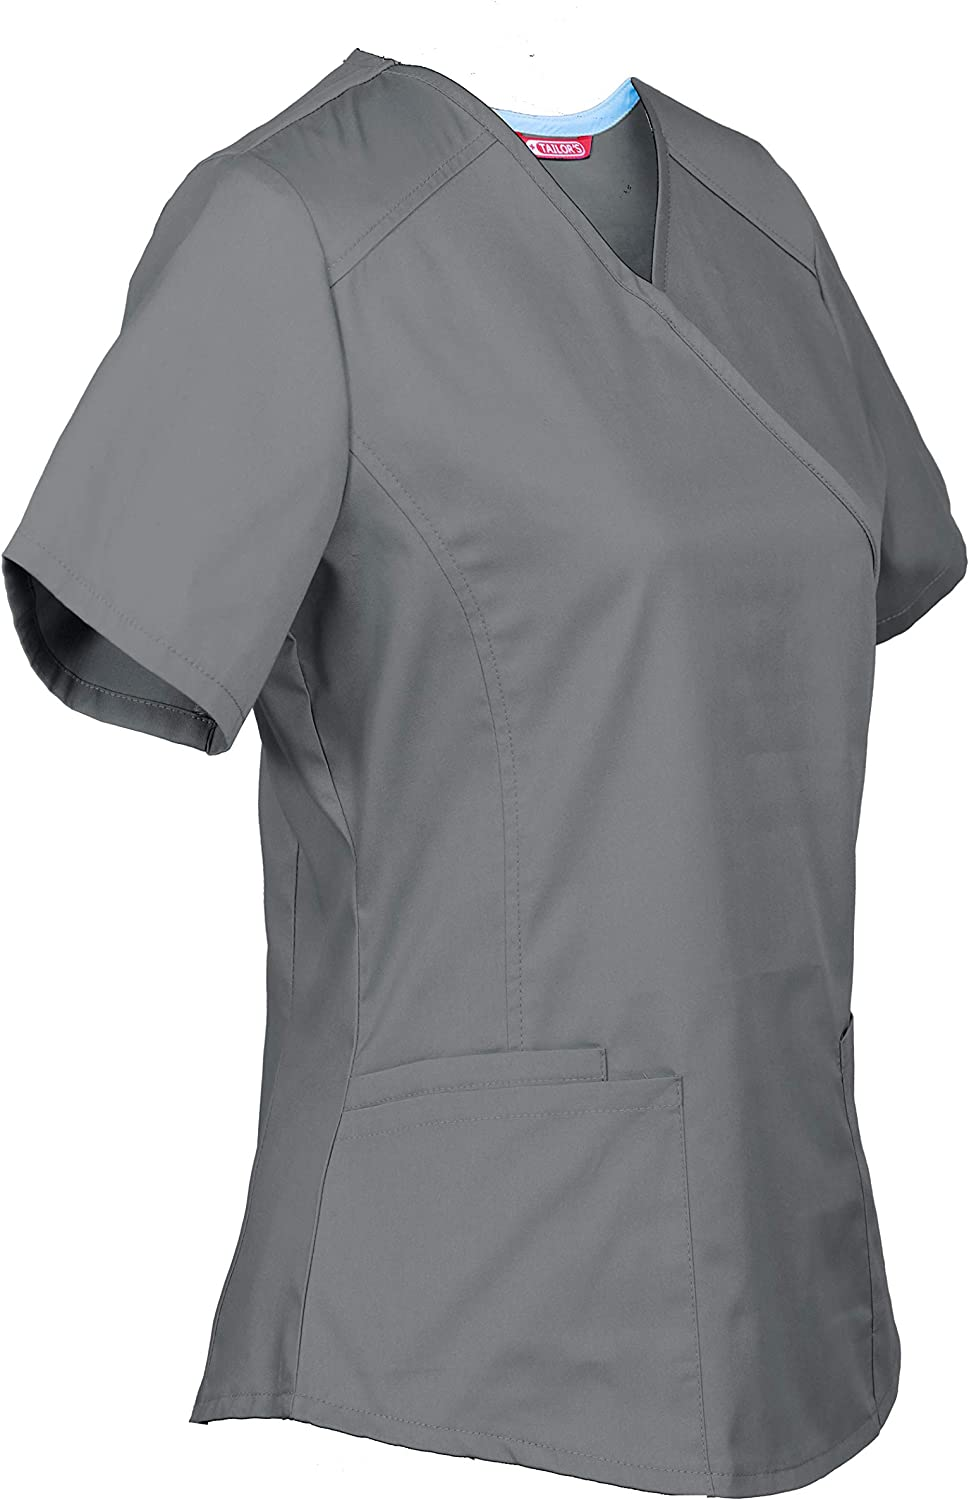 TAILORS Personalized Customizable Embroidered Womens Medical Scrub Top